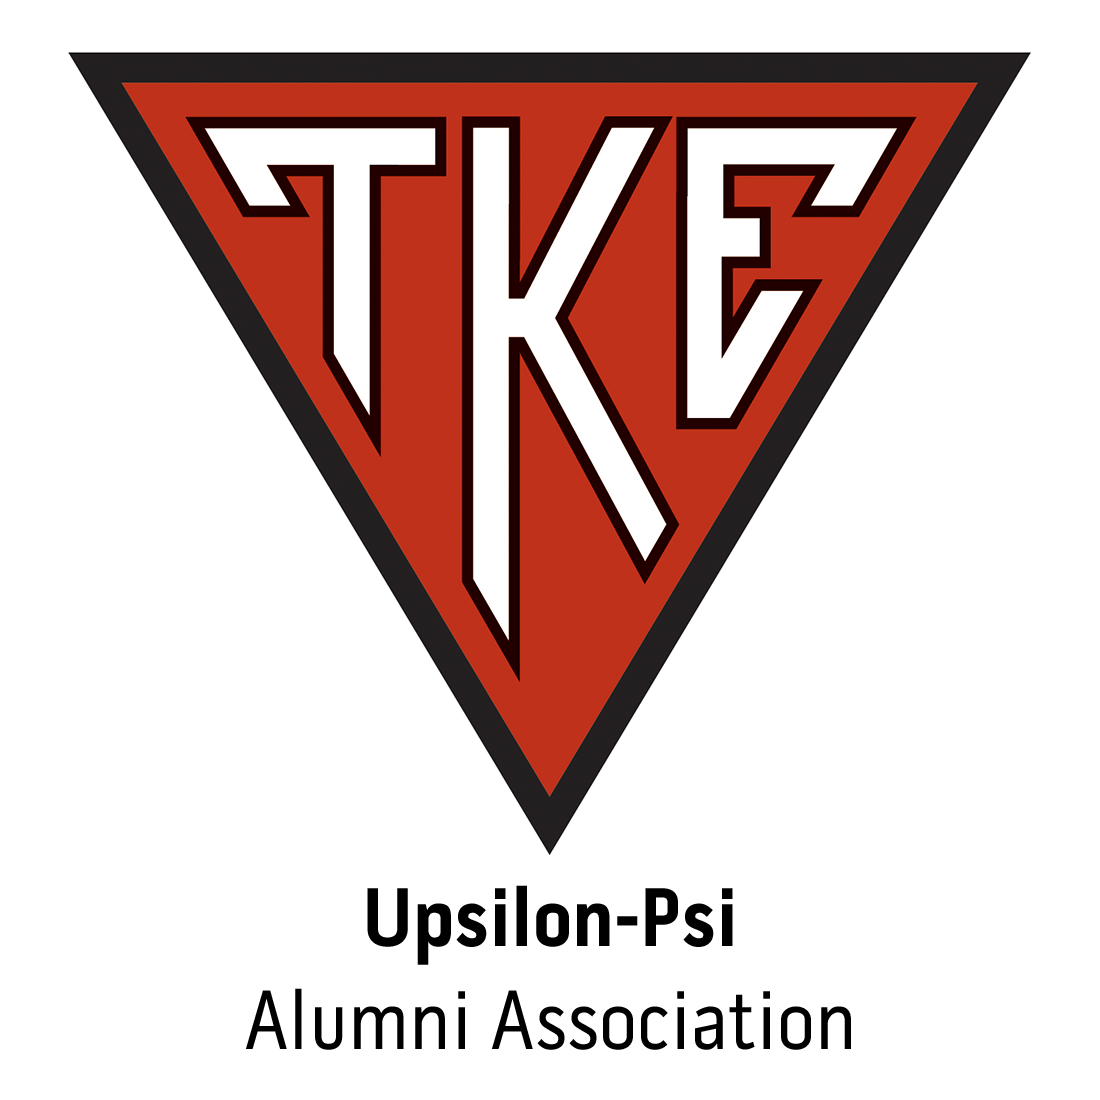 Upsilon-Psi Alumni Association at California State University-East Bay